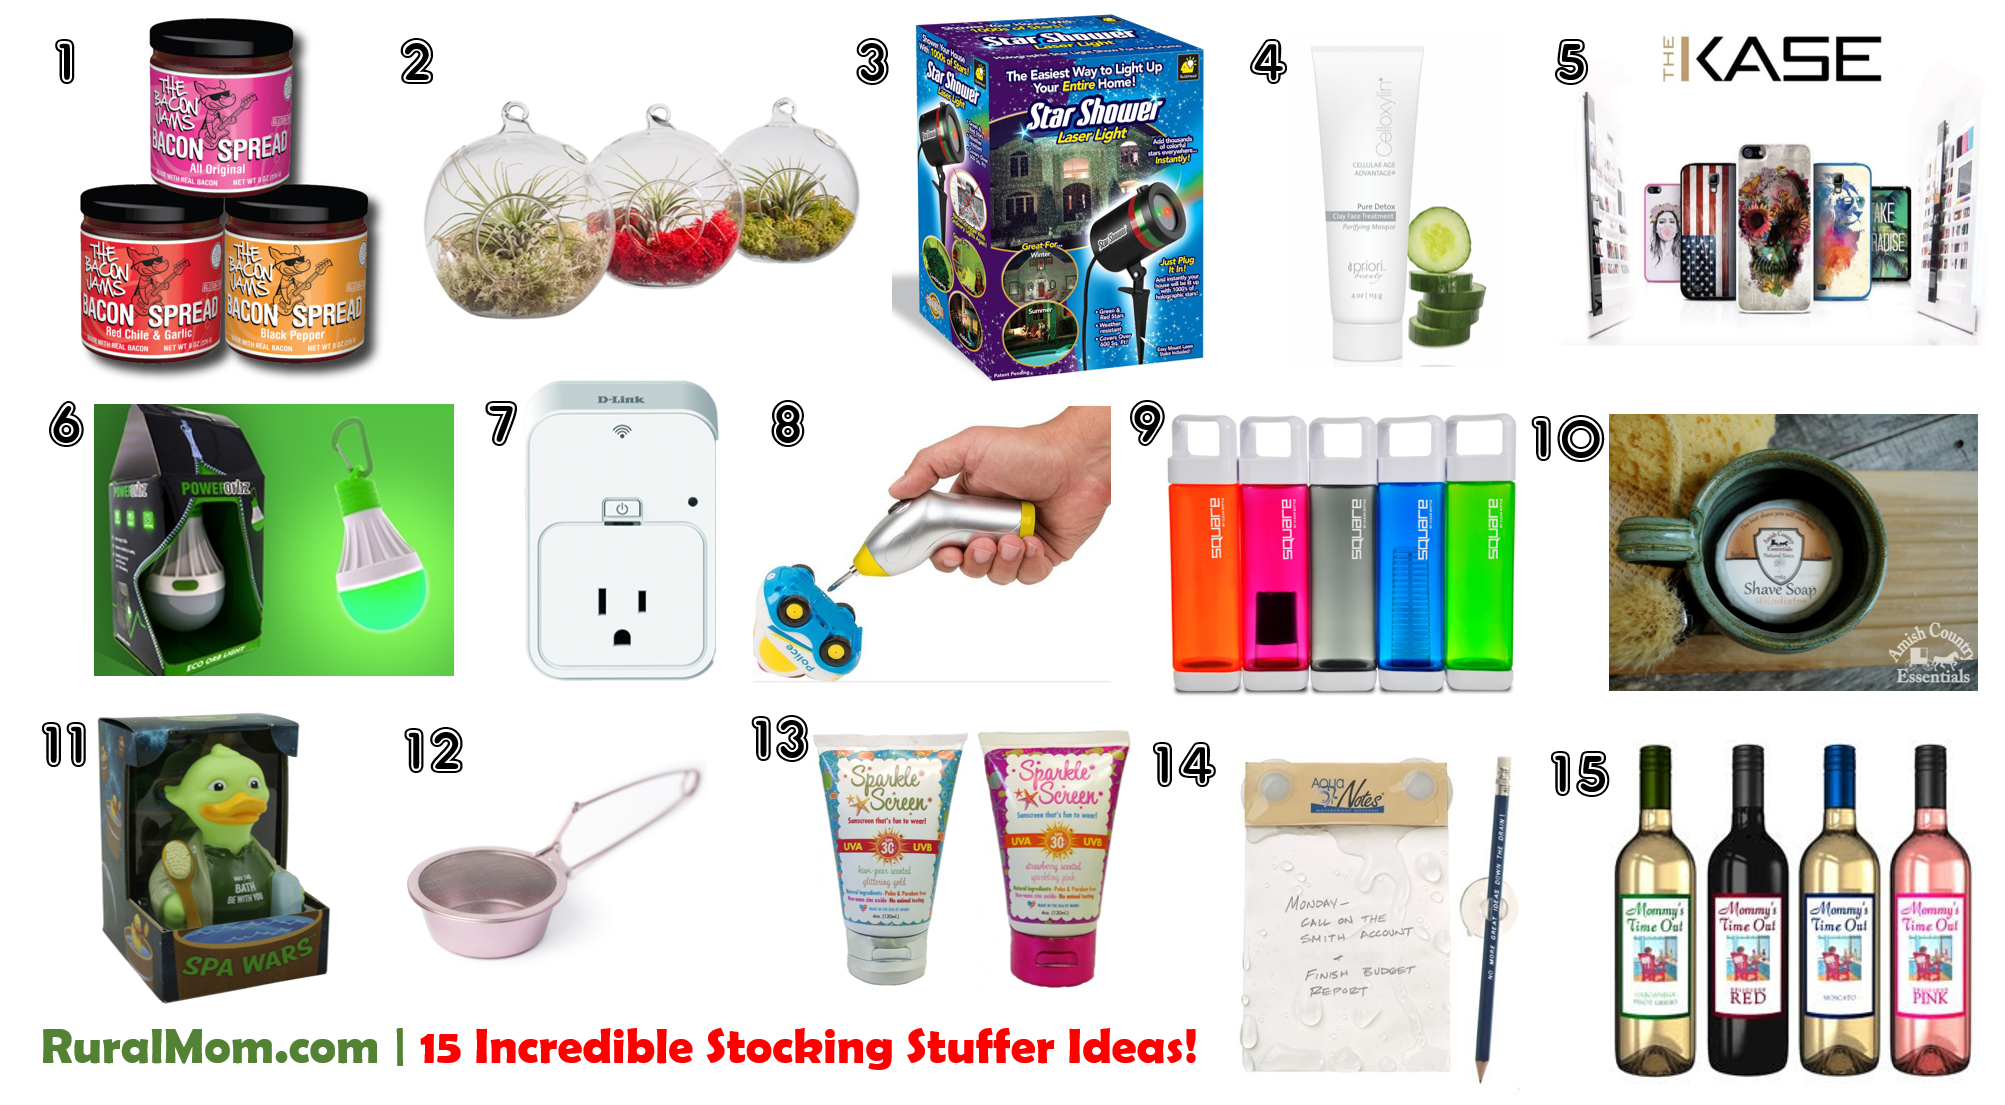 Following Are Rural Mom S Top Picks For Stocking Stuffers There Is Something Everyone On This List I M Sure You Ll Find A Few Great Ideas The